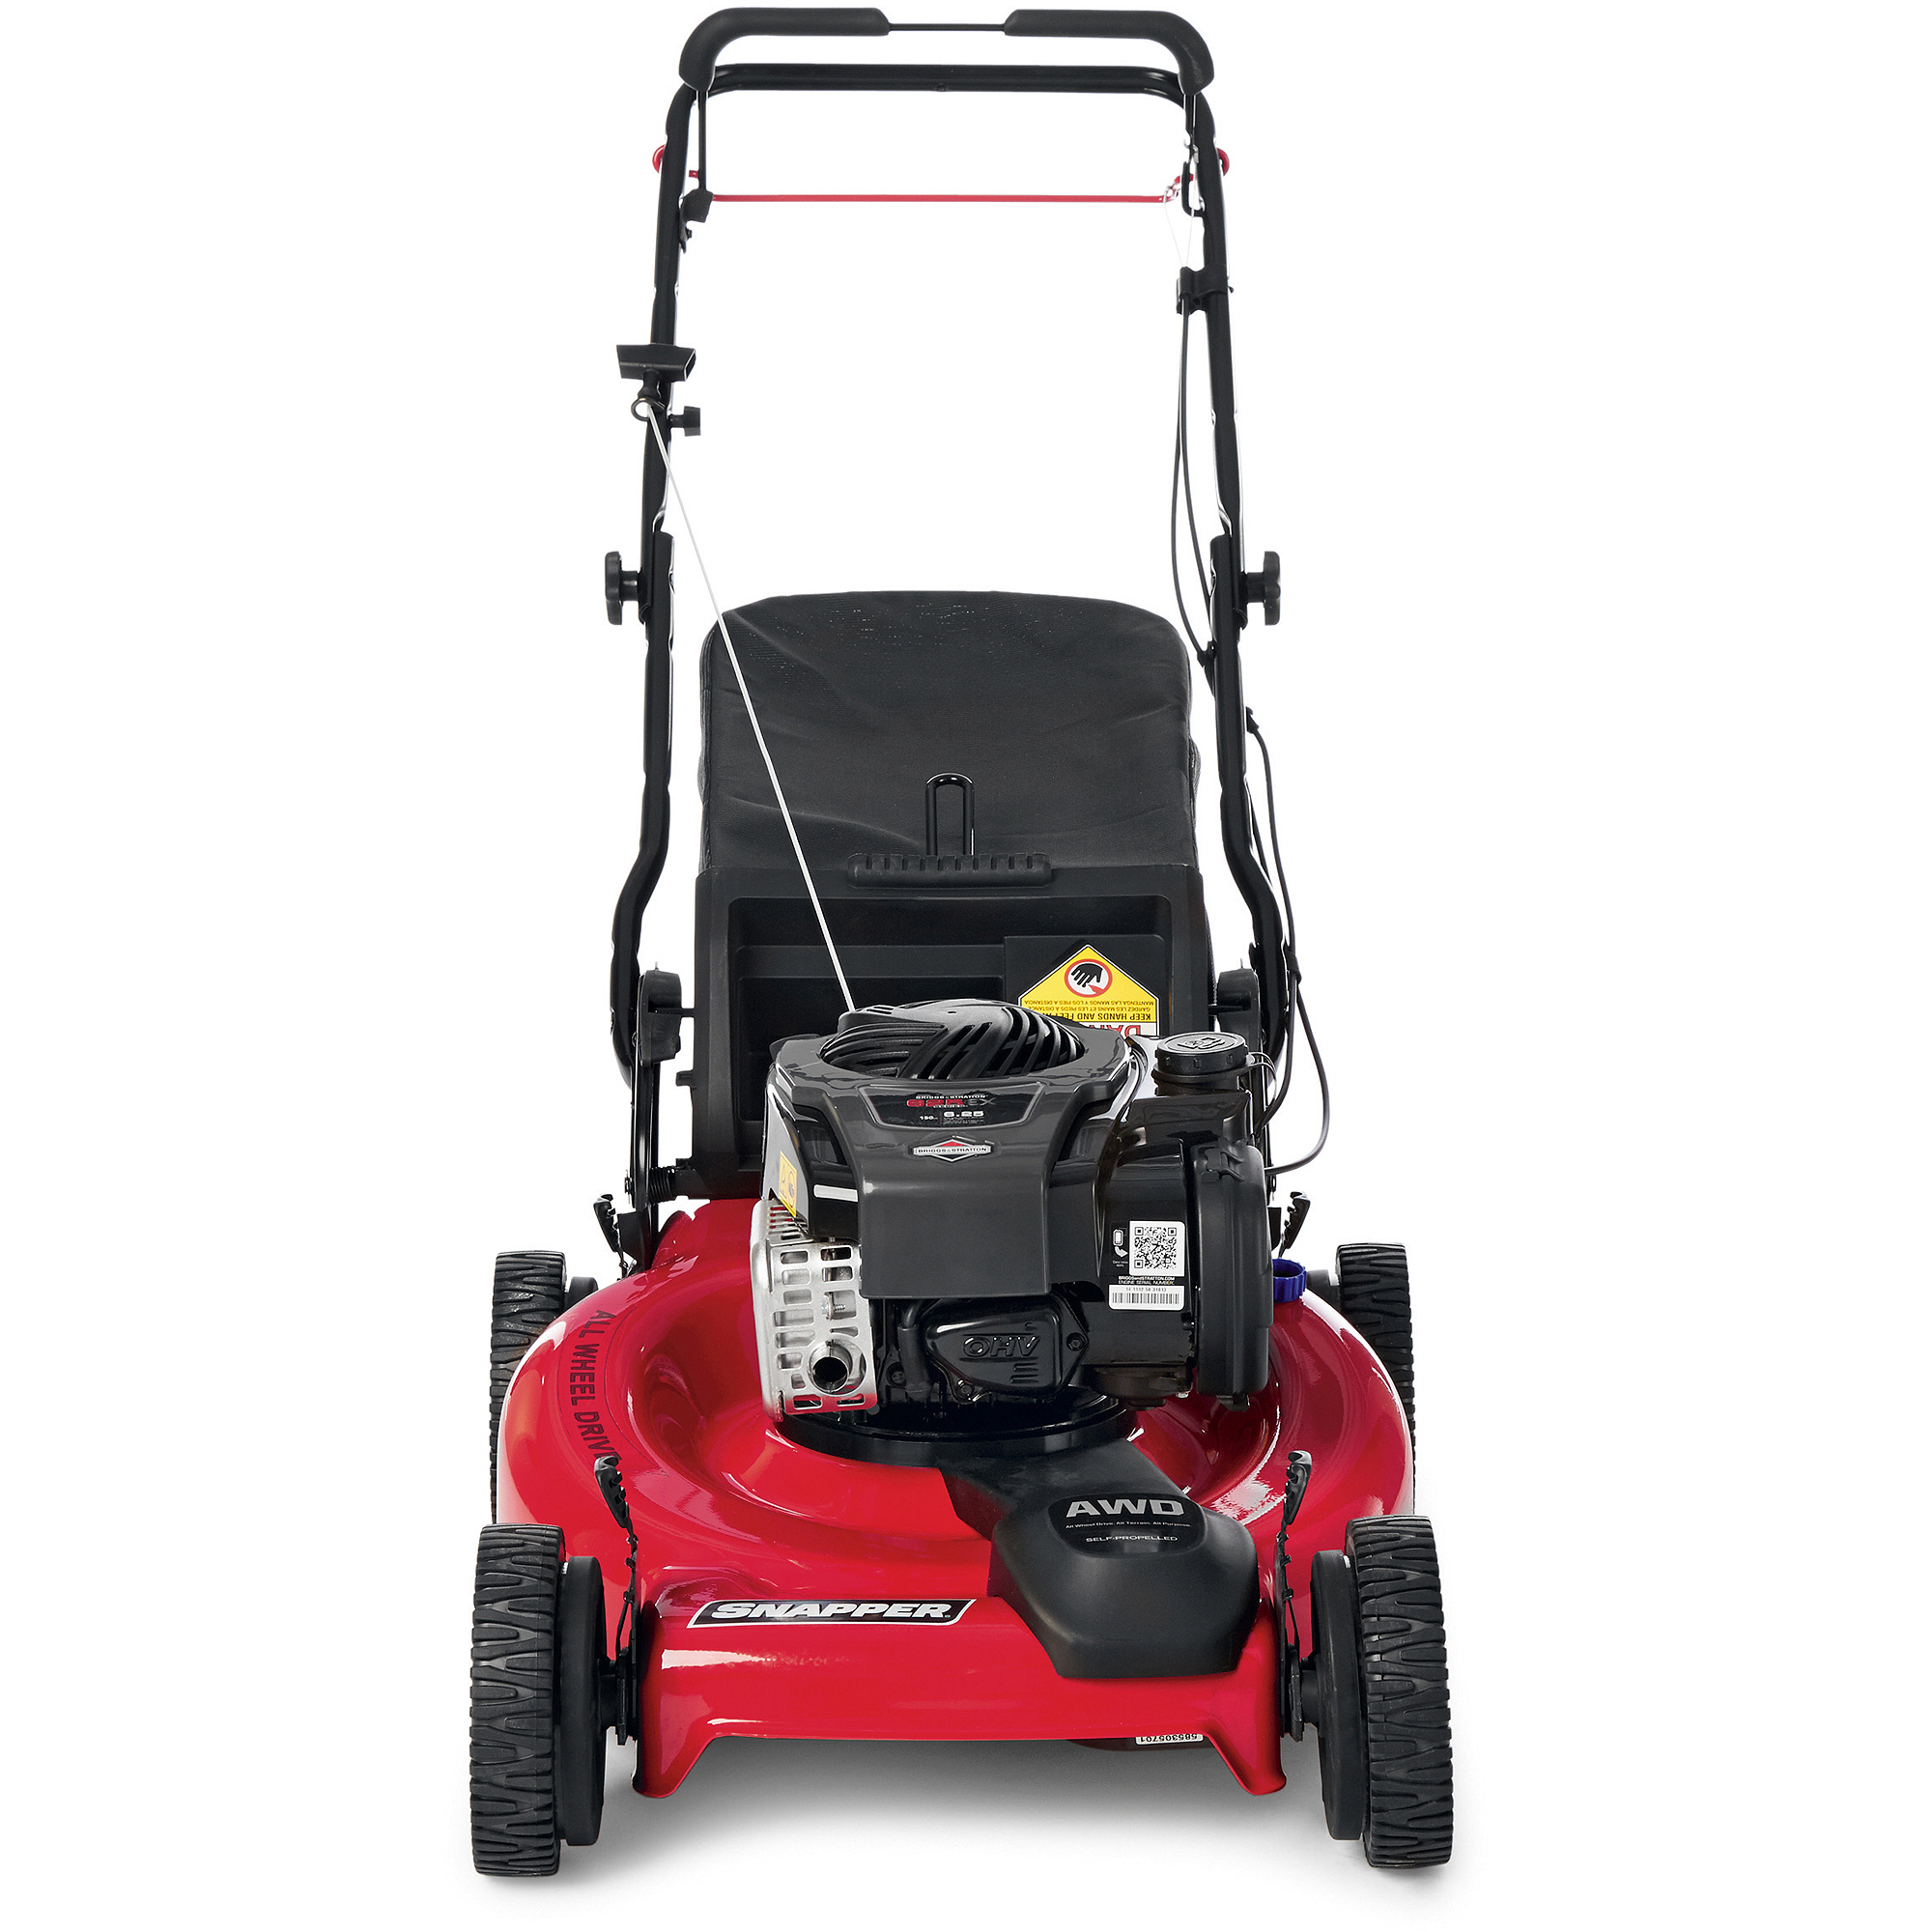 Snapper Awd 2-n-1 Mower